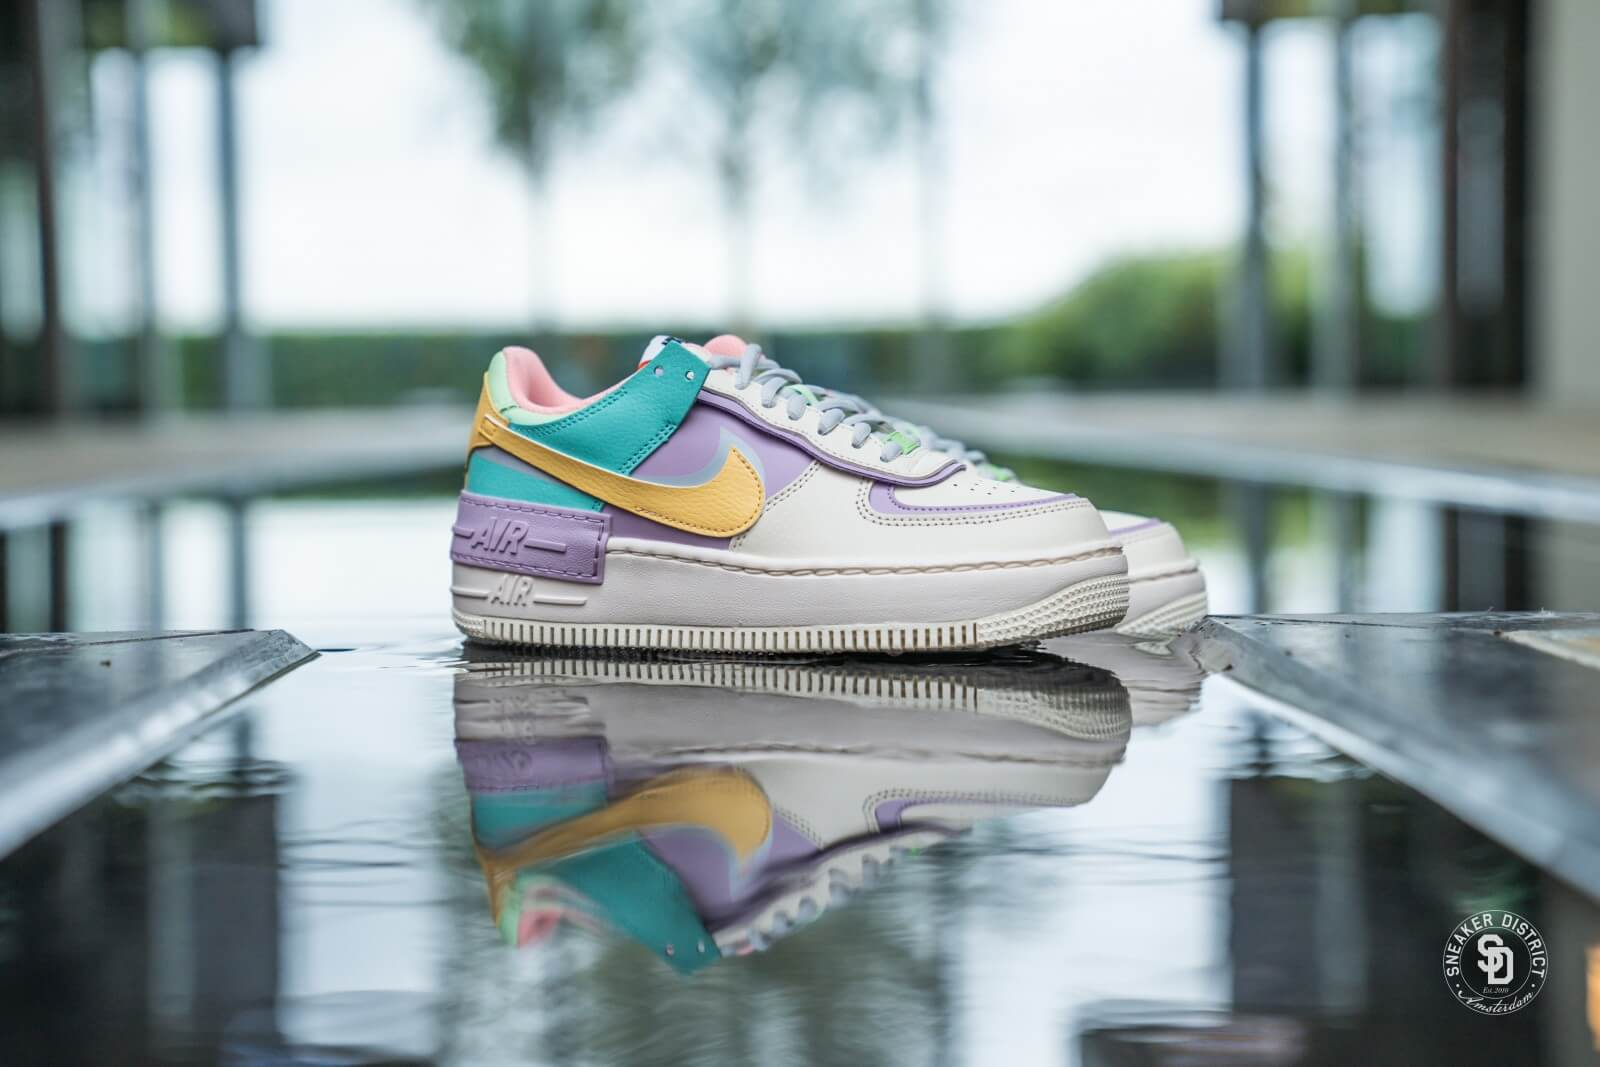 1)$50 $80 for Nike W Air Force 1 Shadow Pale Ivory Violet